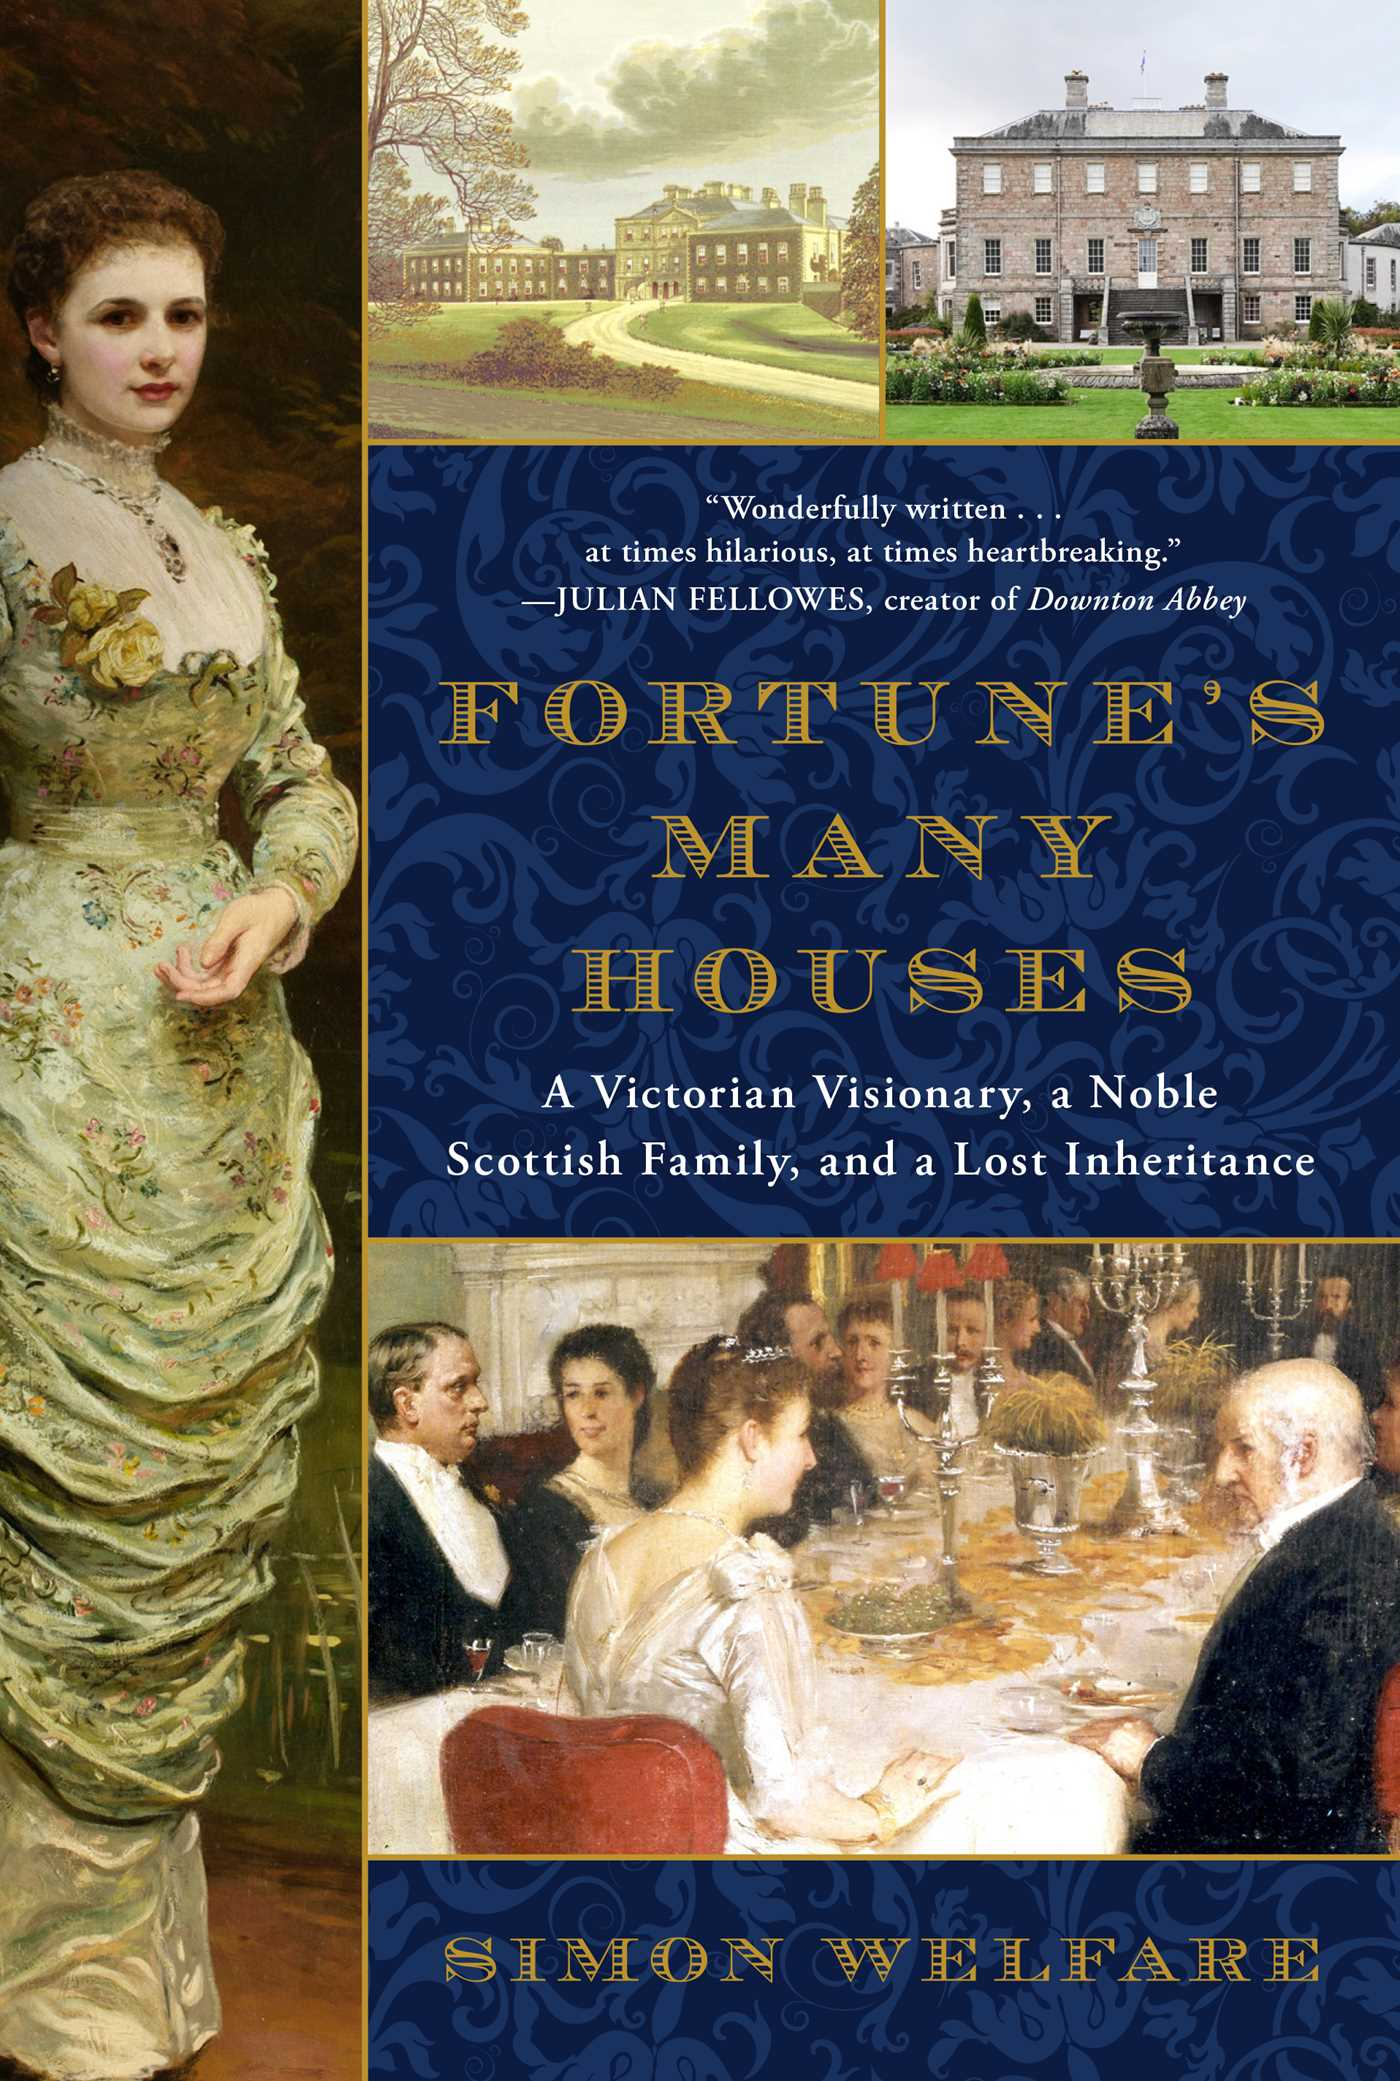 Fortune's Many Houses: A Victorian Visionary, a Noble Scottish Family, and a Lost Inheritance